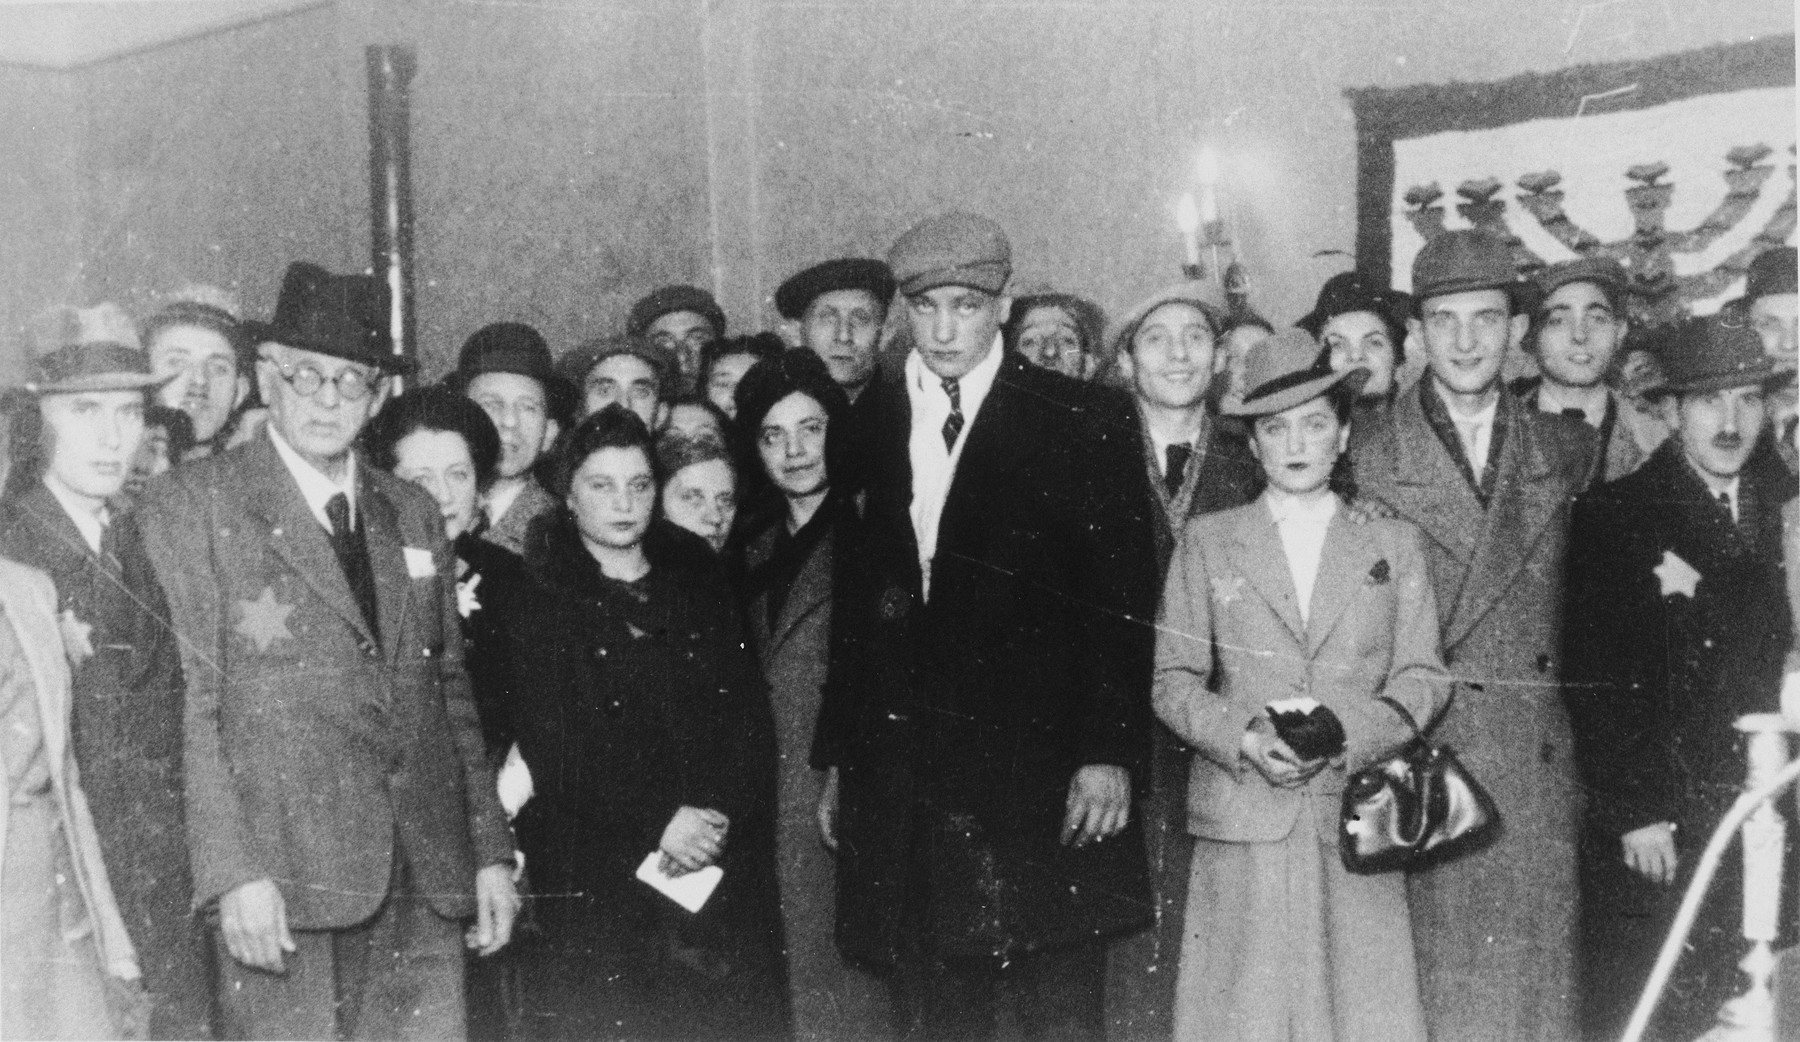 Jewish council chairman Mordechai Chaim Rumkowski, poses with a group of people at a ceremony in the Lodz ghetto.